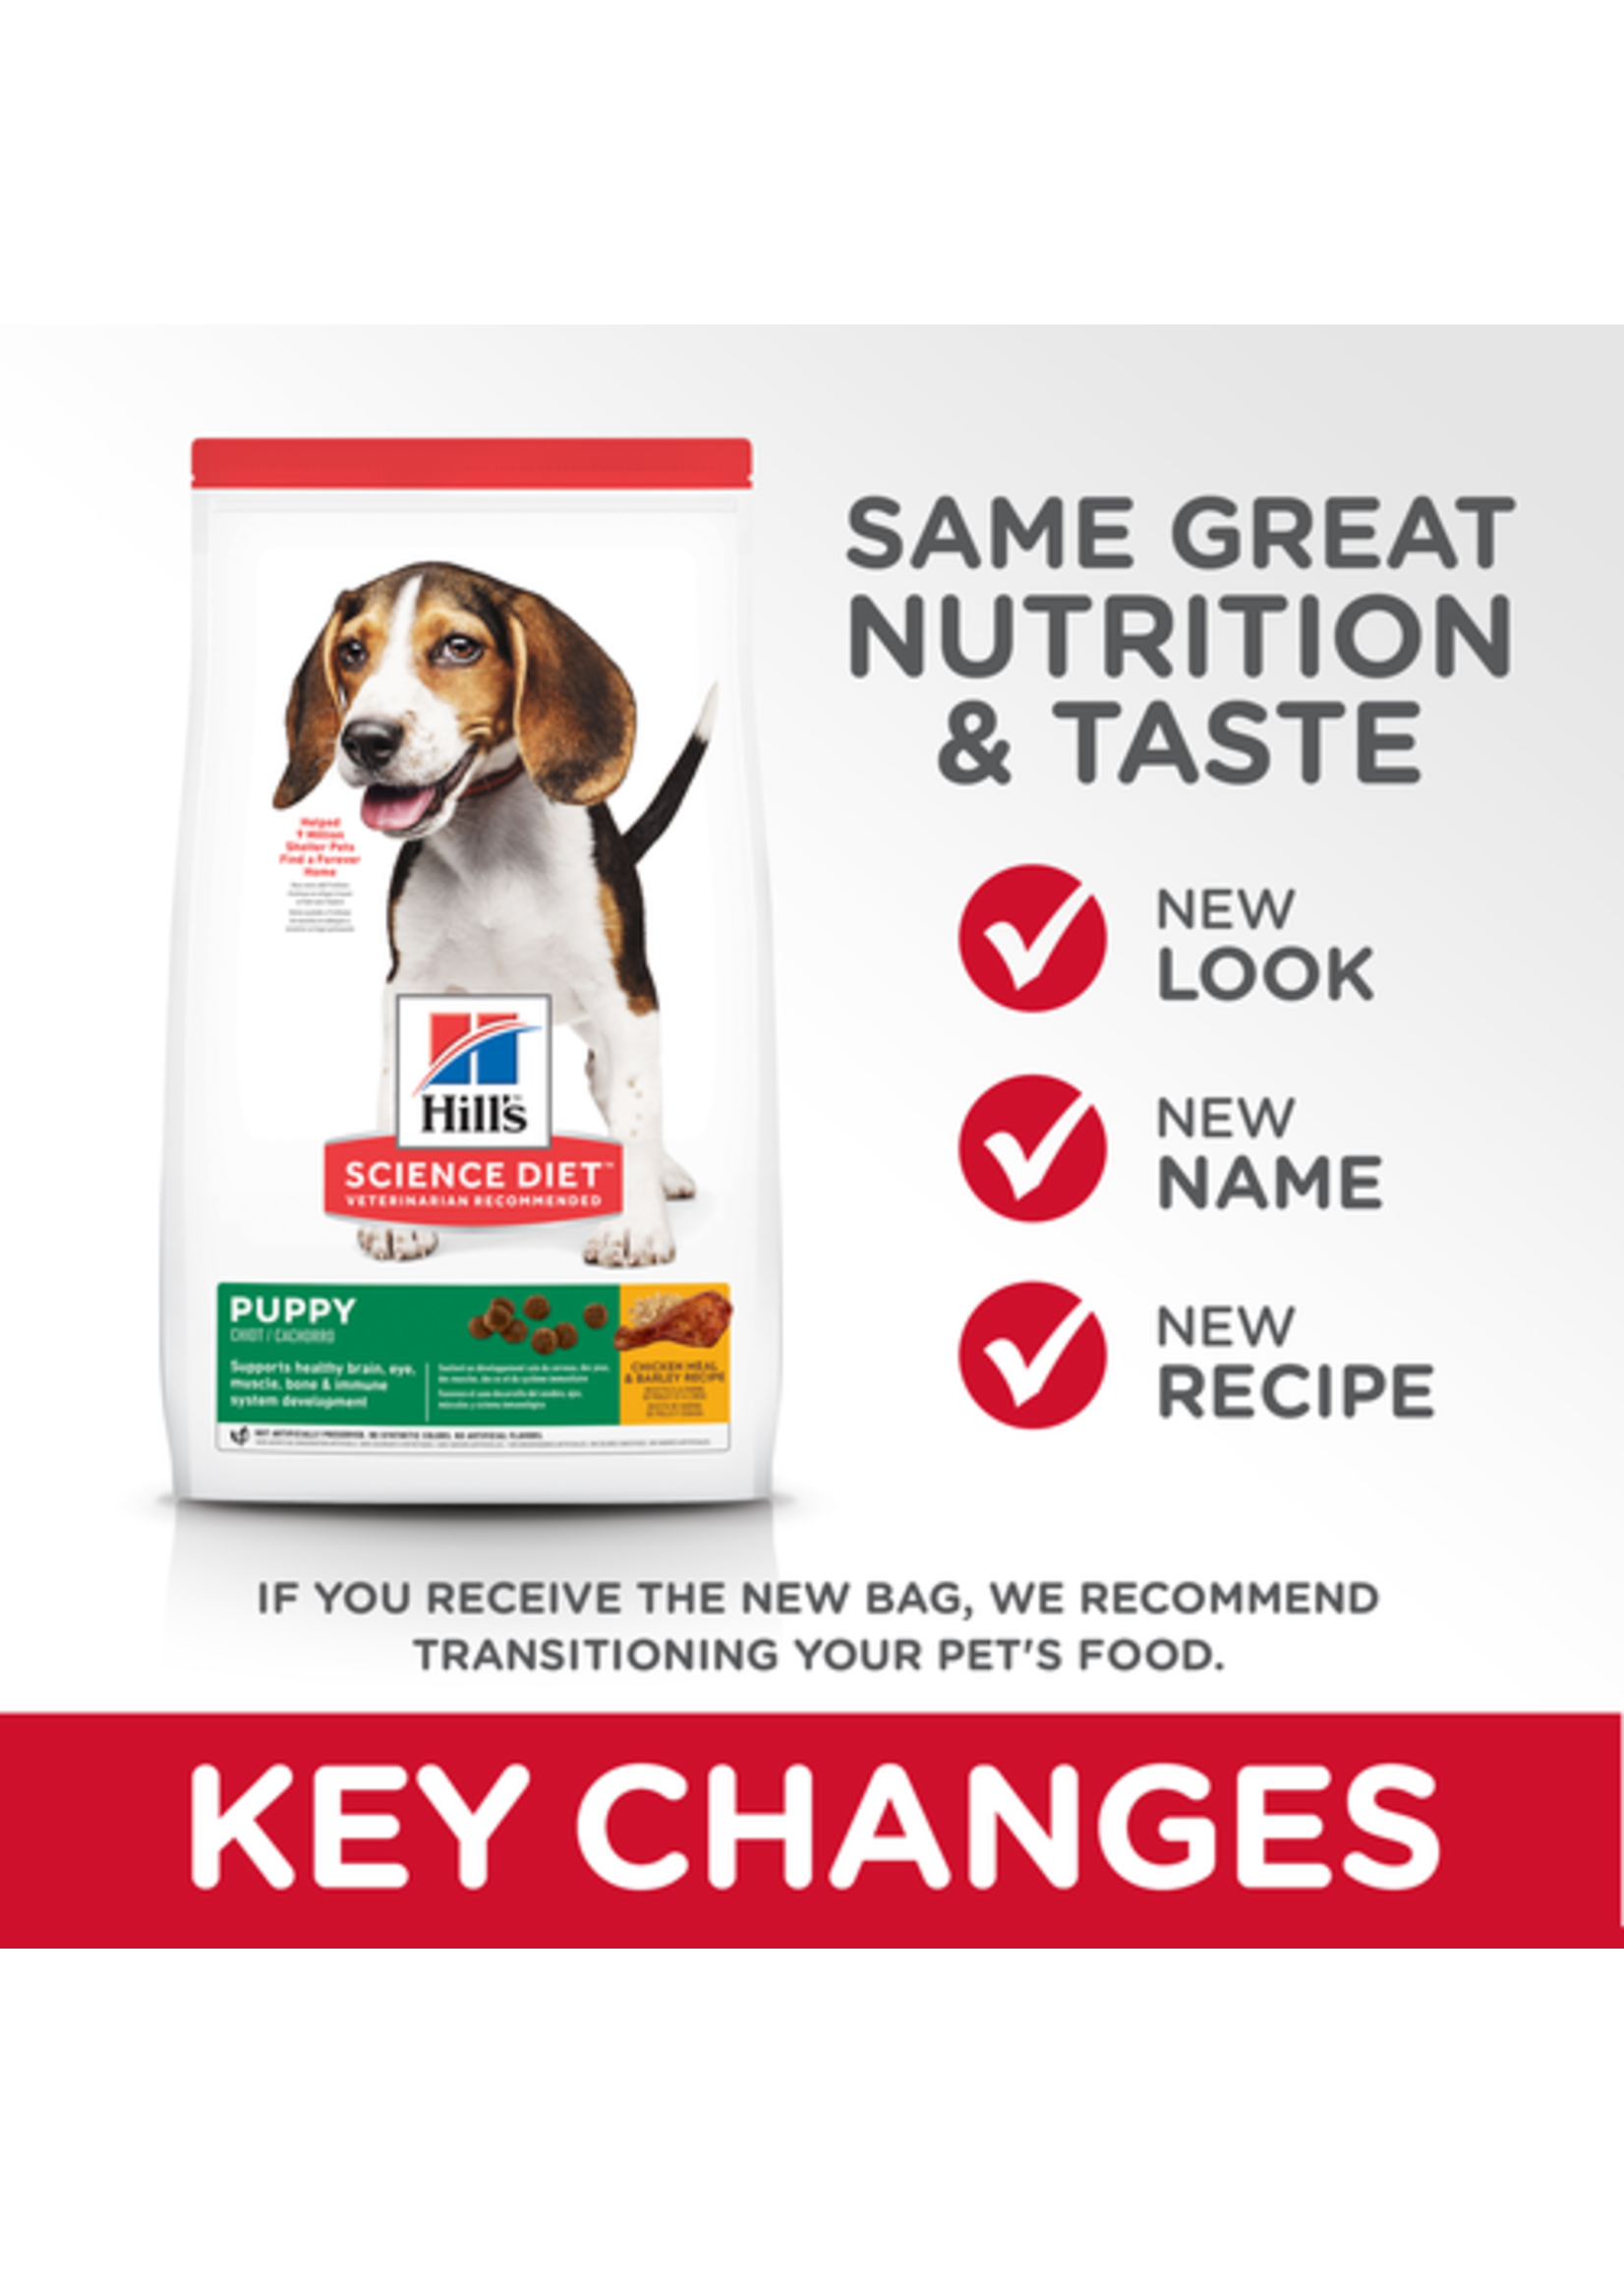 Hill's Science Diet Hill's Science Diet Puppy Chicken Meal & Barley Recipe 15.5lb Bag